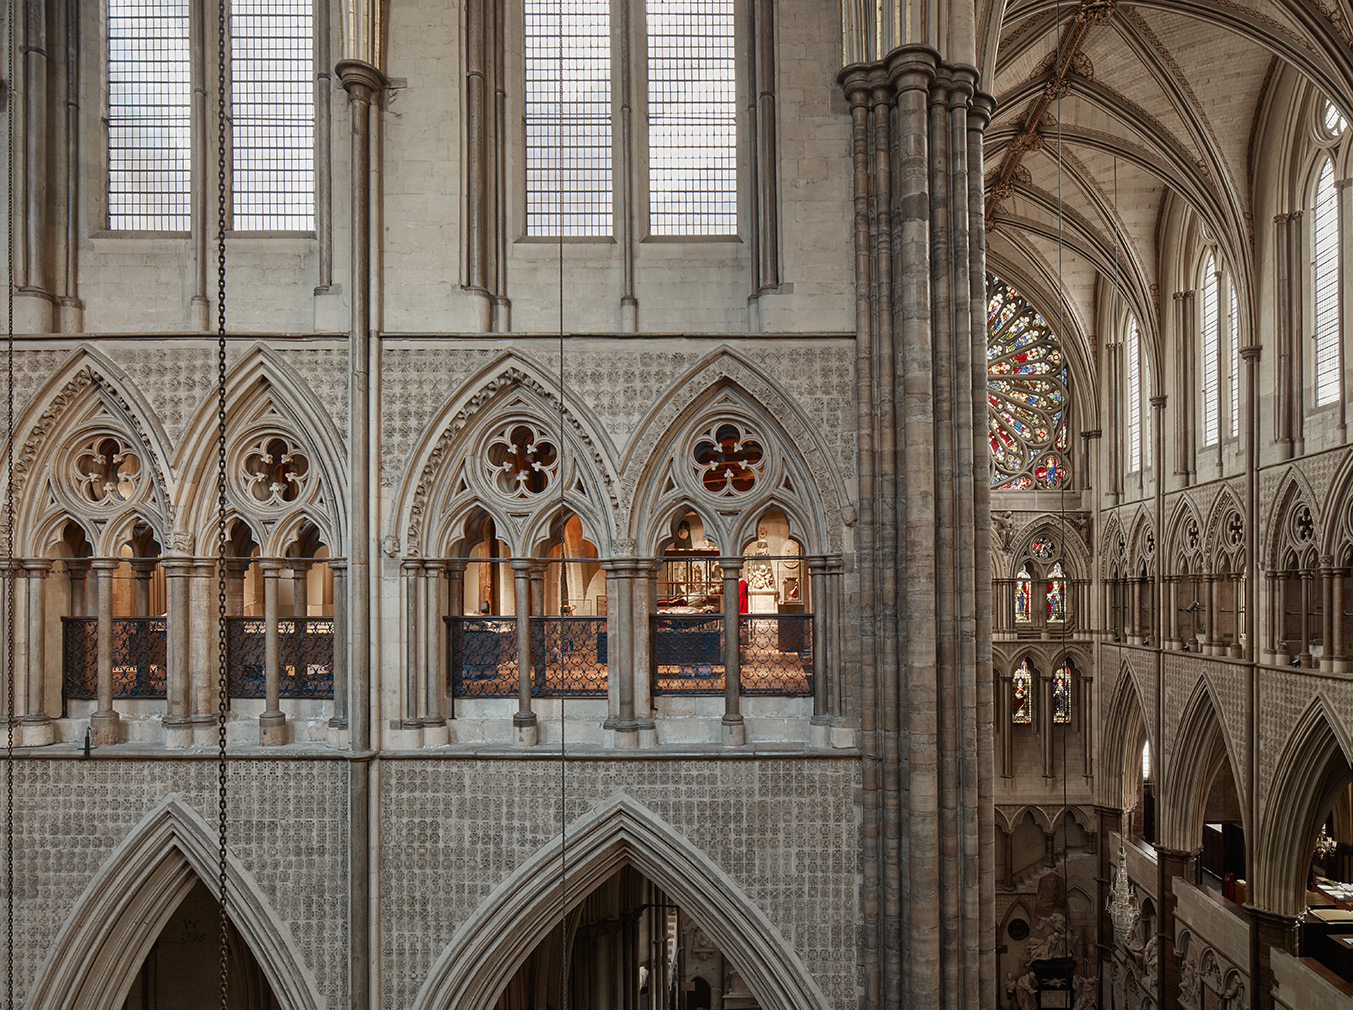 Queen's Diamond Jubilee Galleries at Westminster Abbey